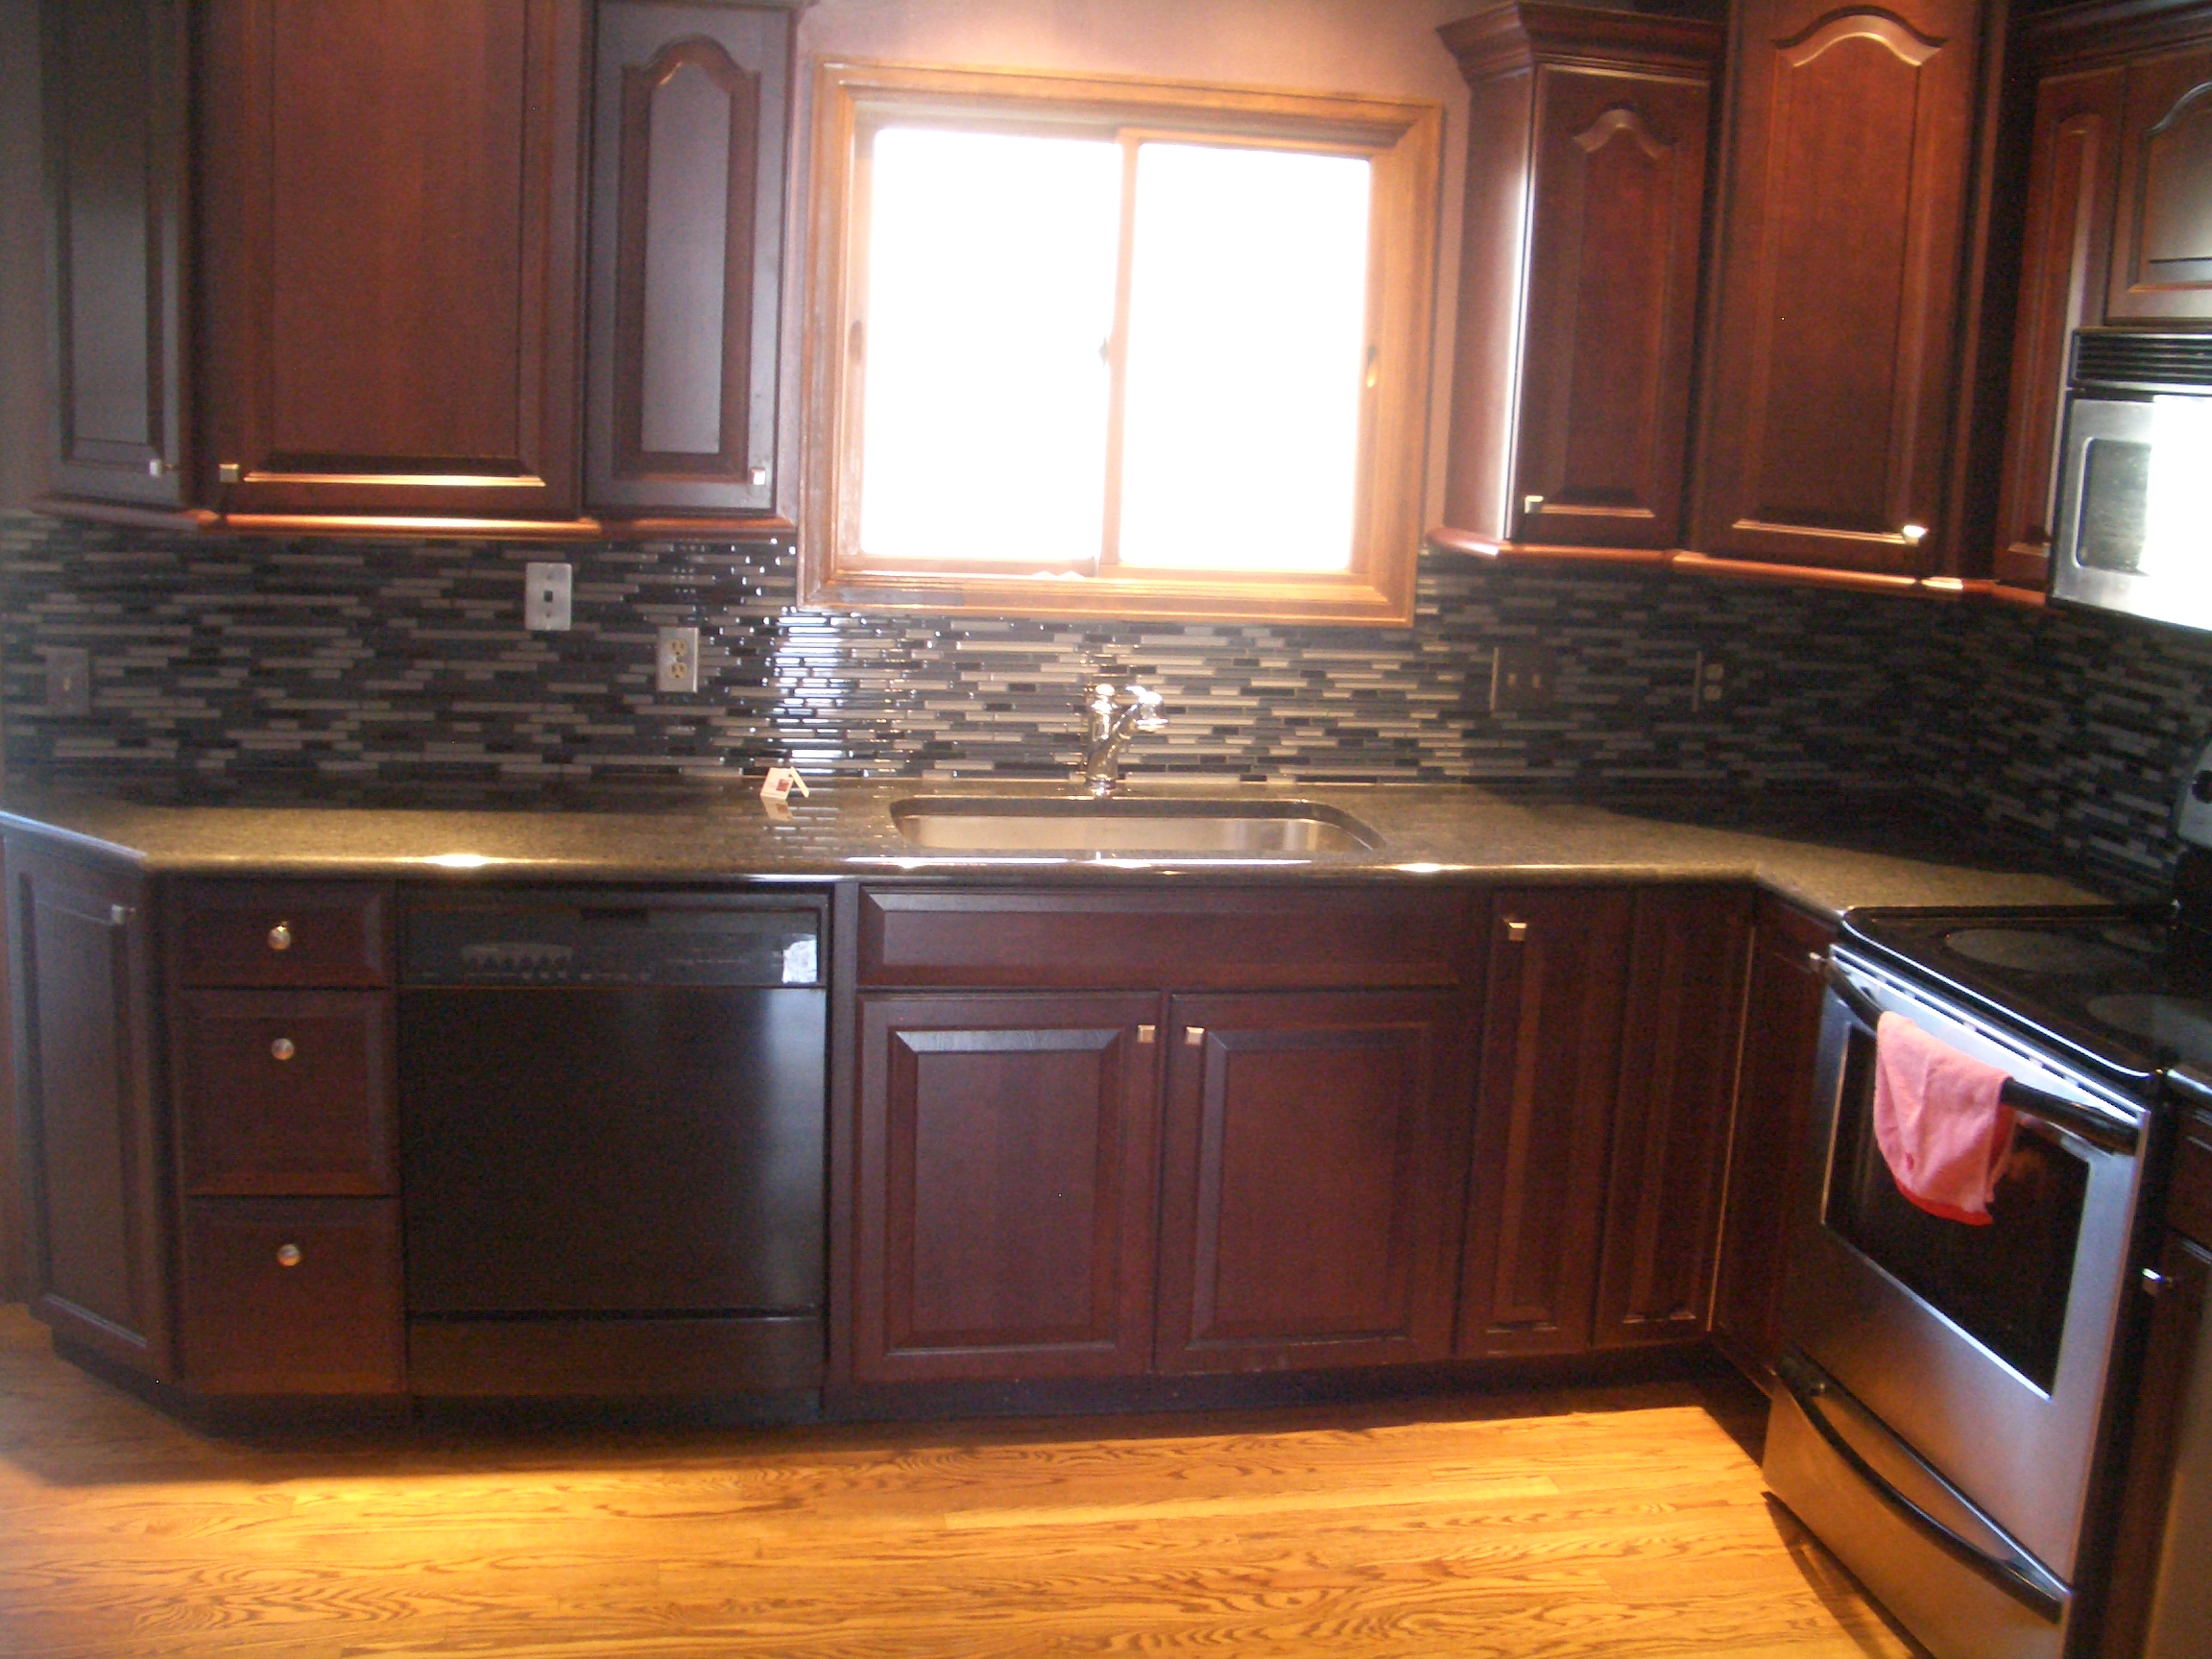 Glass tile kitchen backsplash in fort collins Kitchen backsplash ideas pictures 2010